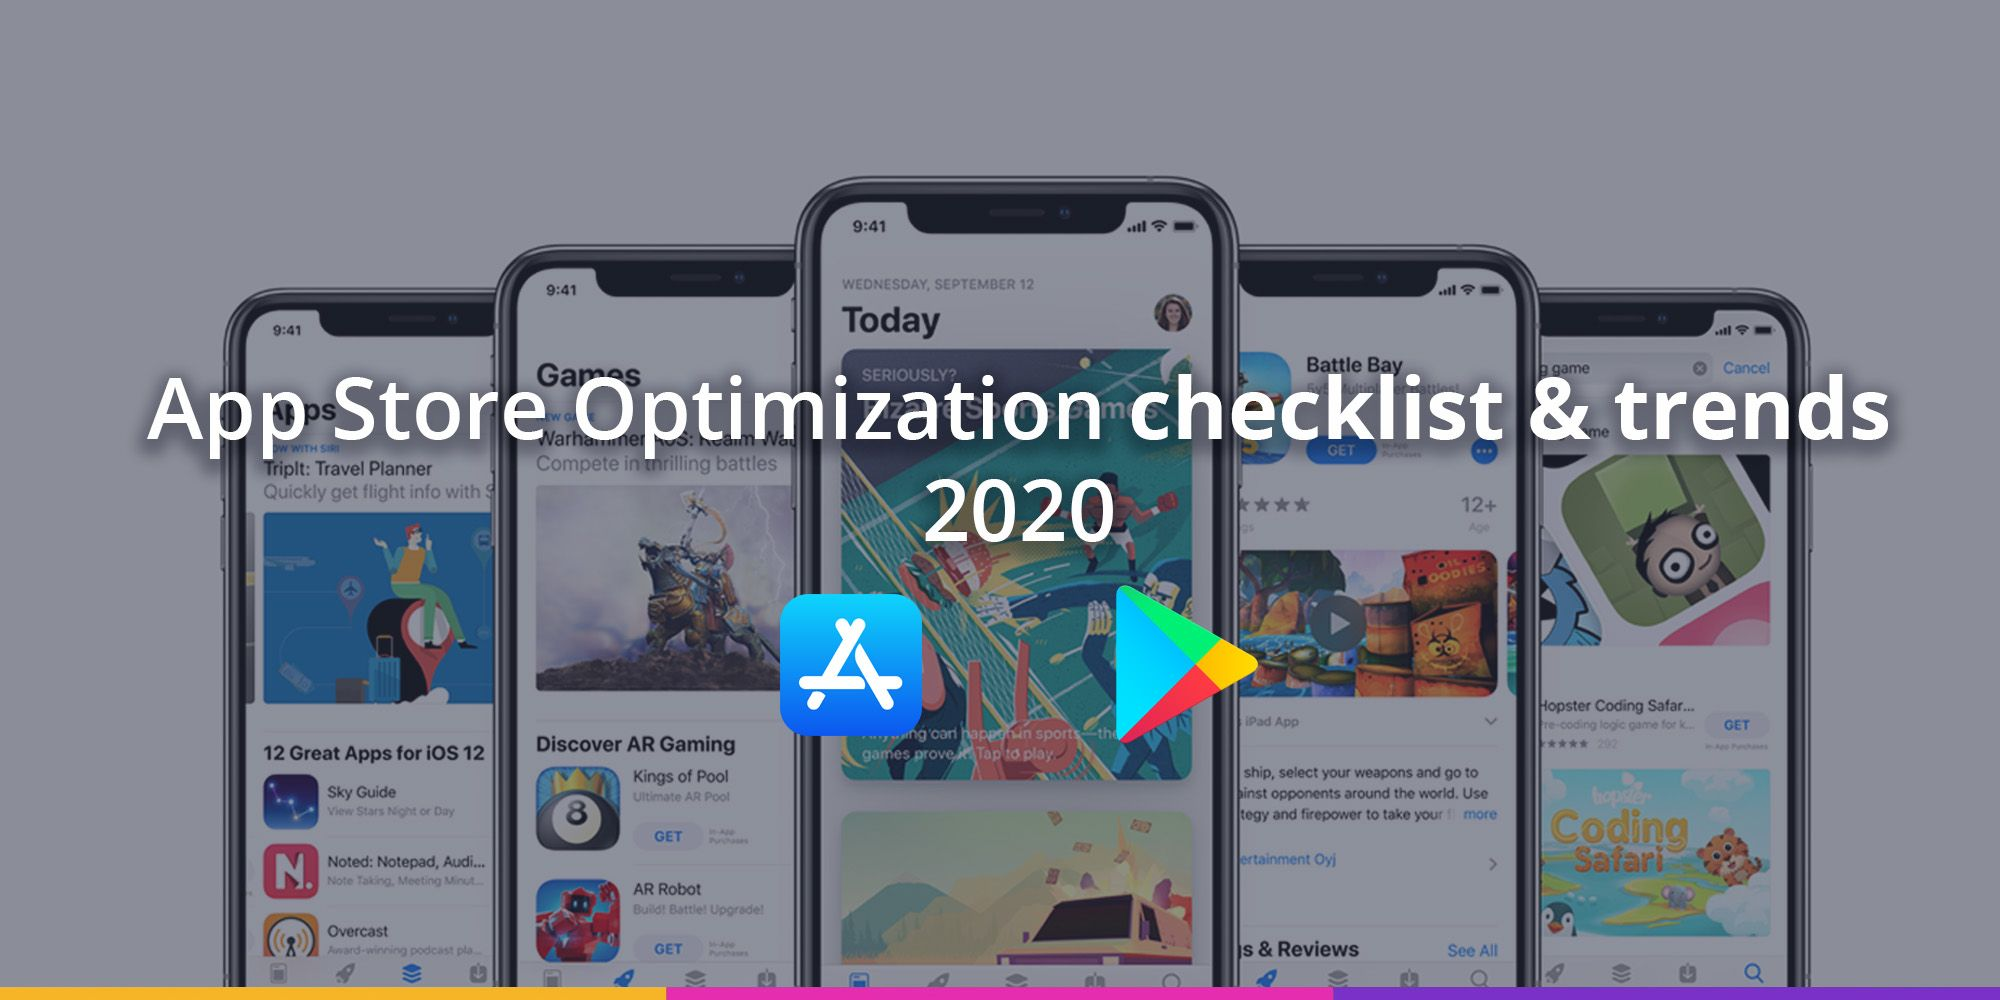 App Store Optimization checklist & trends for 2020